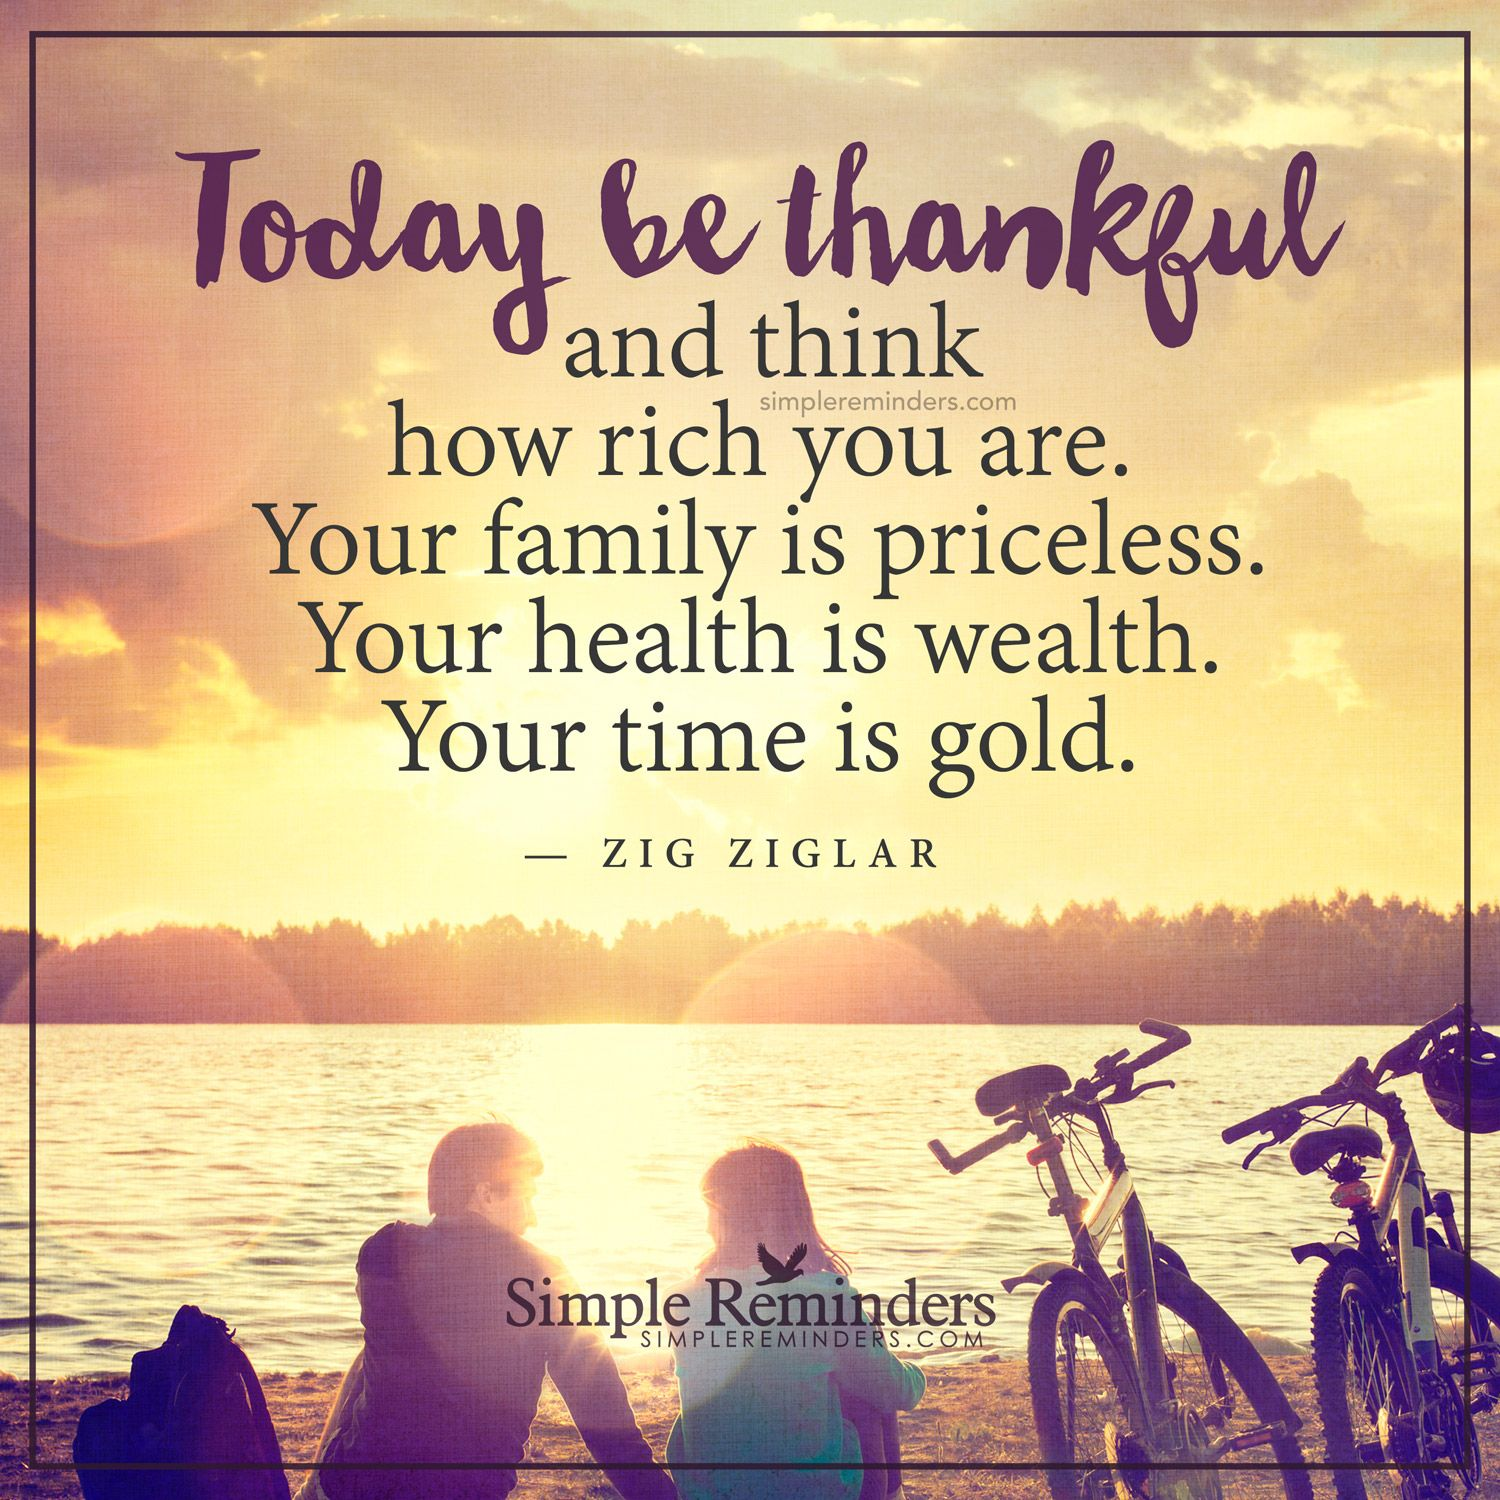 Thankful For Family Quotes: Today Be Thankful Today Be Thankful And Think How Rich You